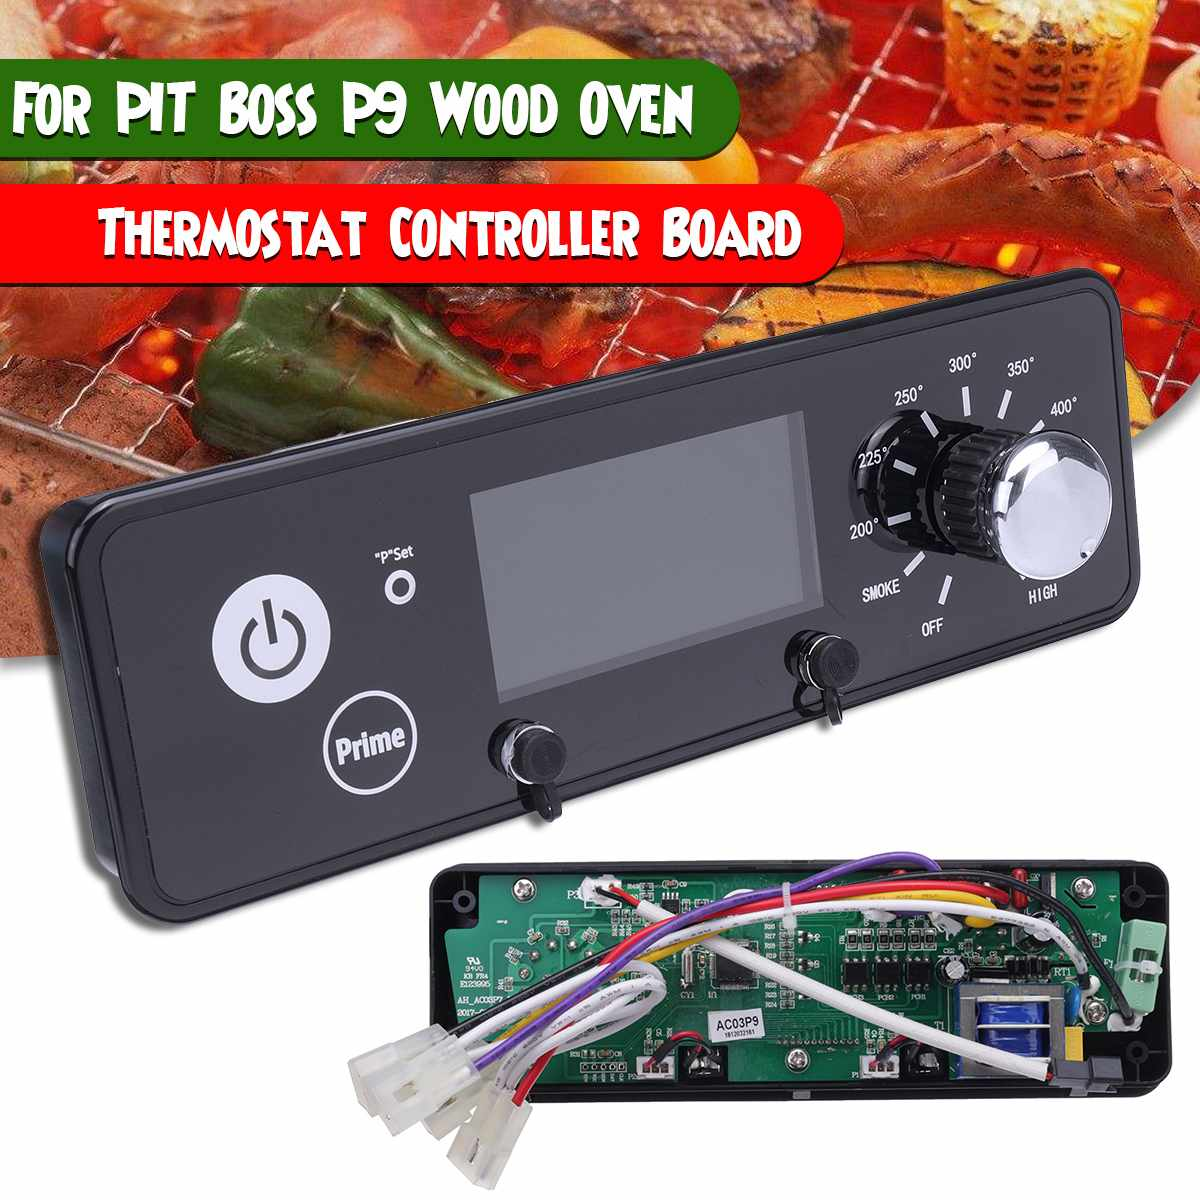 NEW AC120V P9 Thermostat Controller Board W/LCD Display For PIT Boss P9 Wood Oven BBQ Barbecue Stove Tools